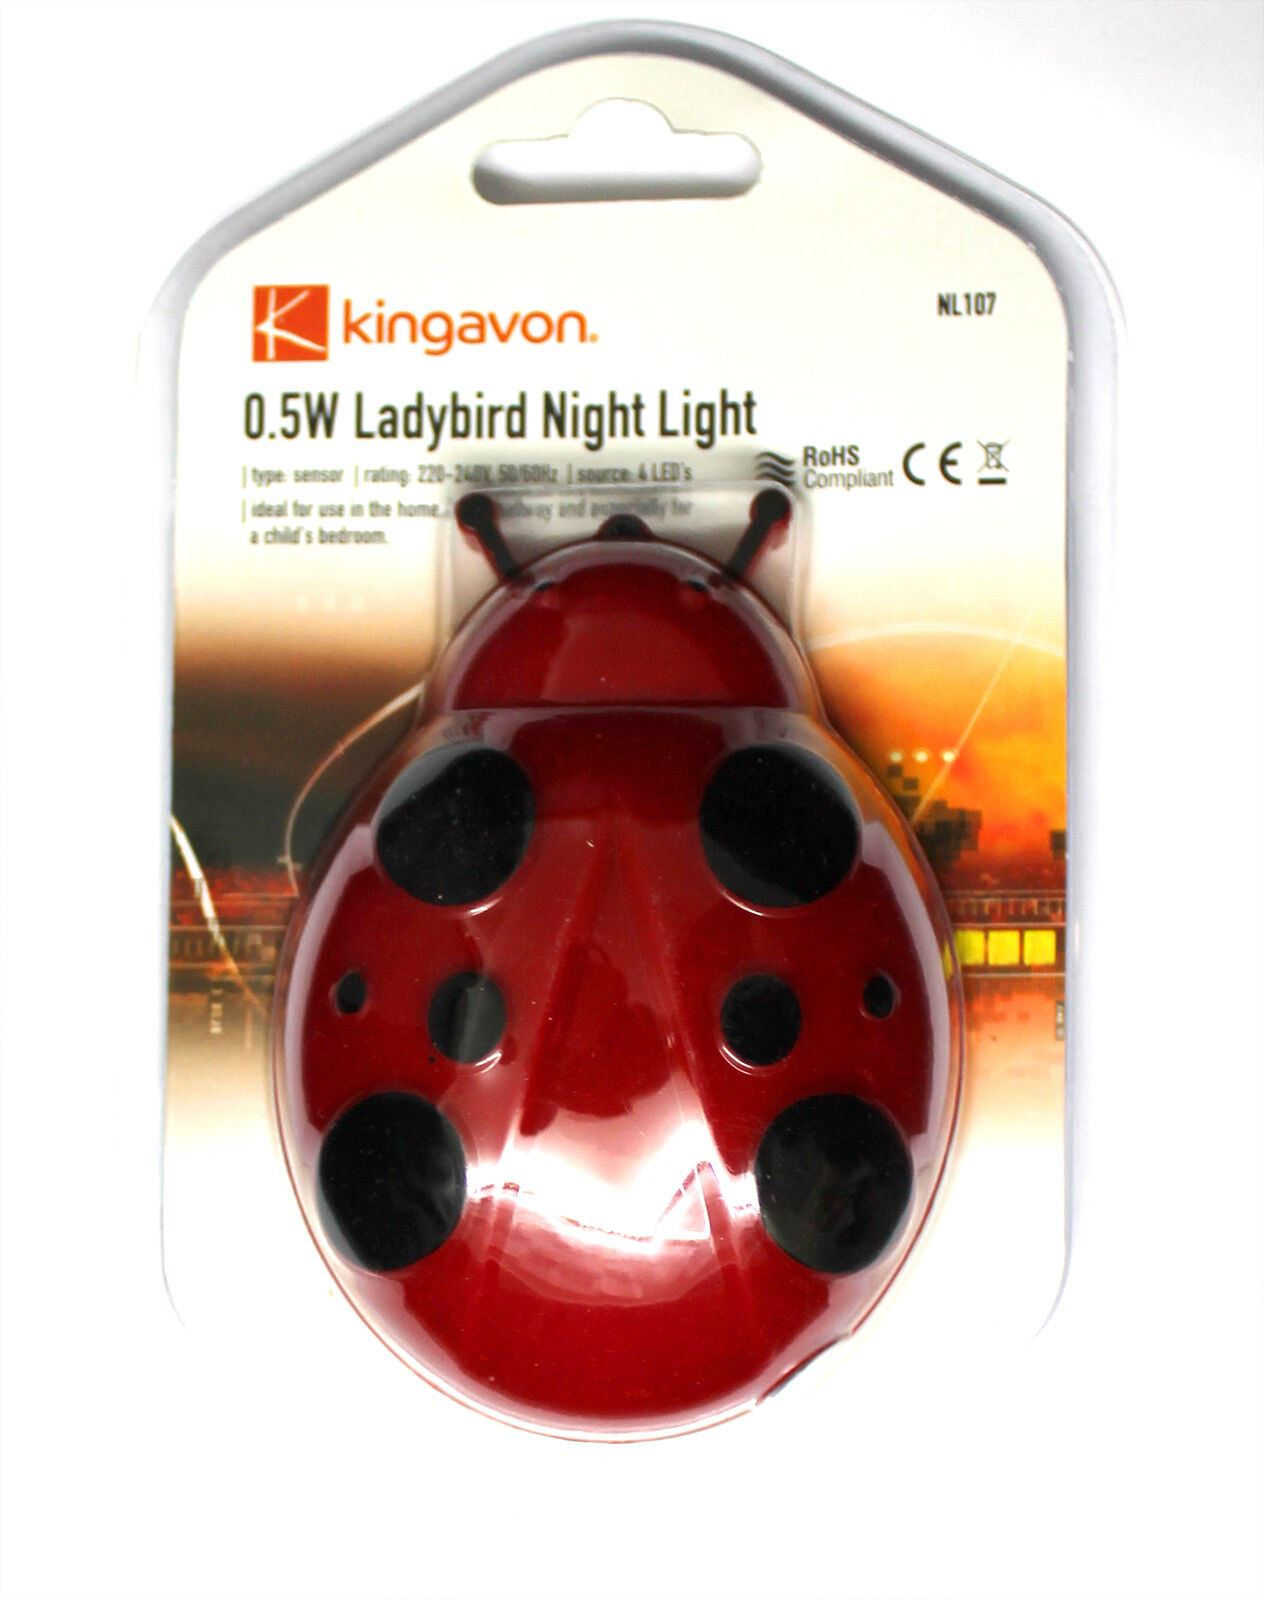 0-5W-LED-Night-Light-Plug-in-Ladybird-Home-Hallway-Child-Safety-Bedroom-Sensor thumbnail 4